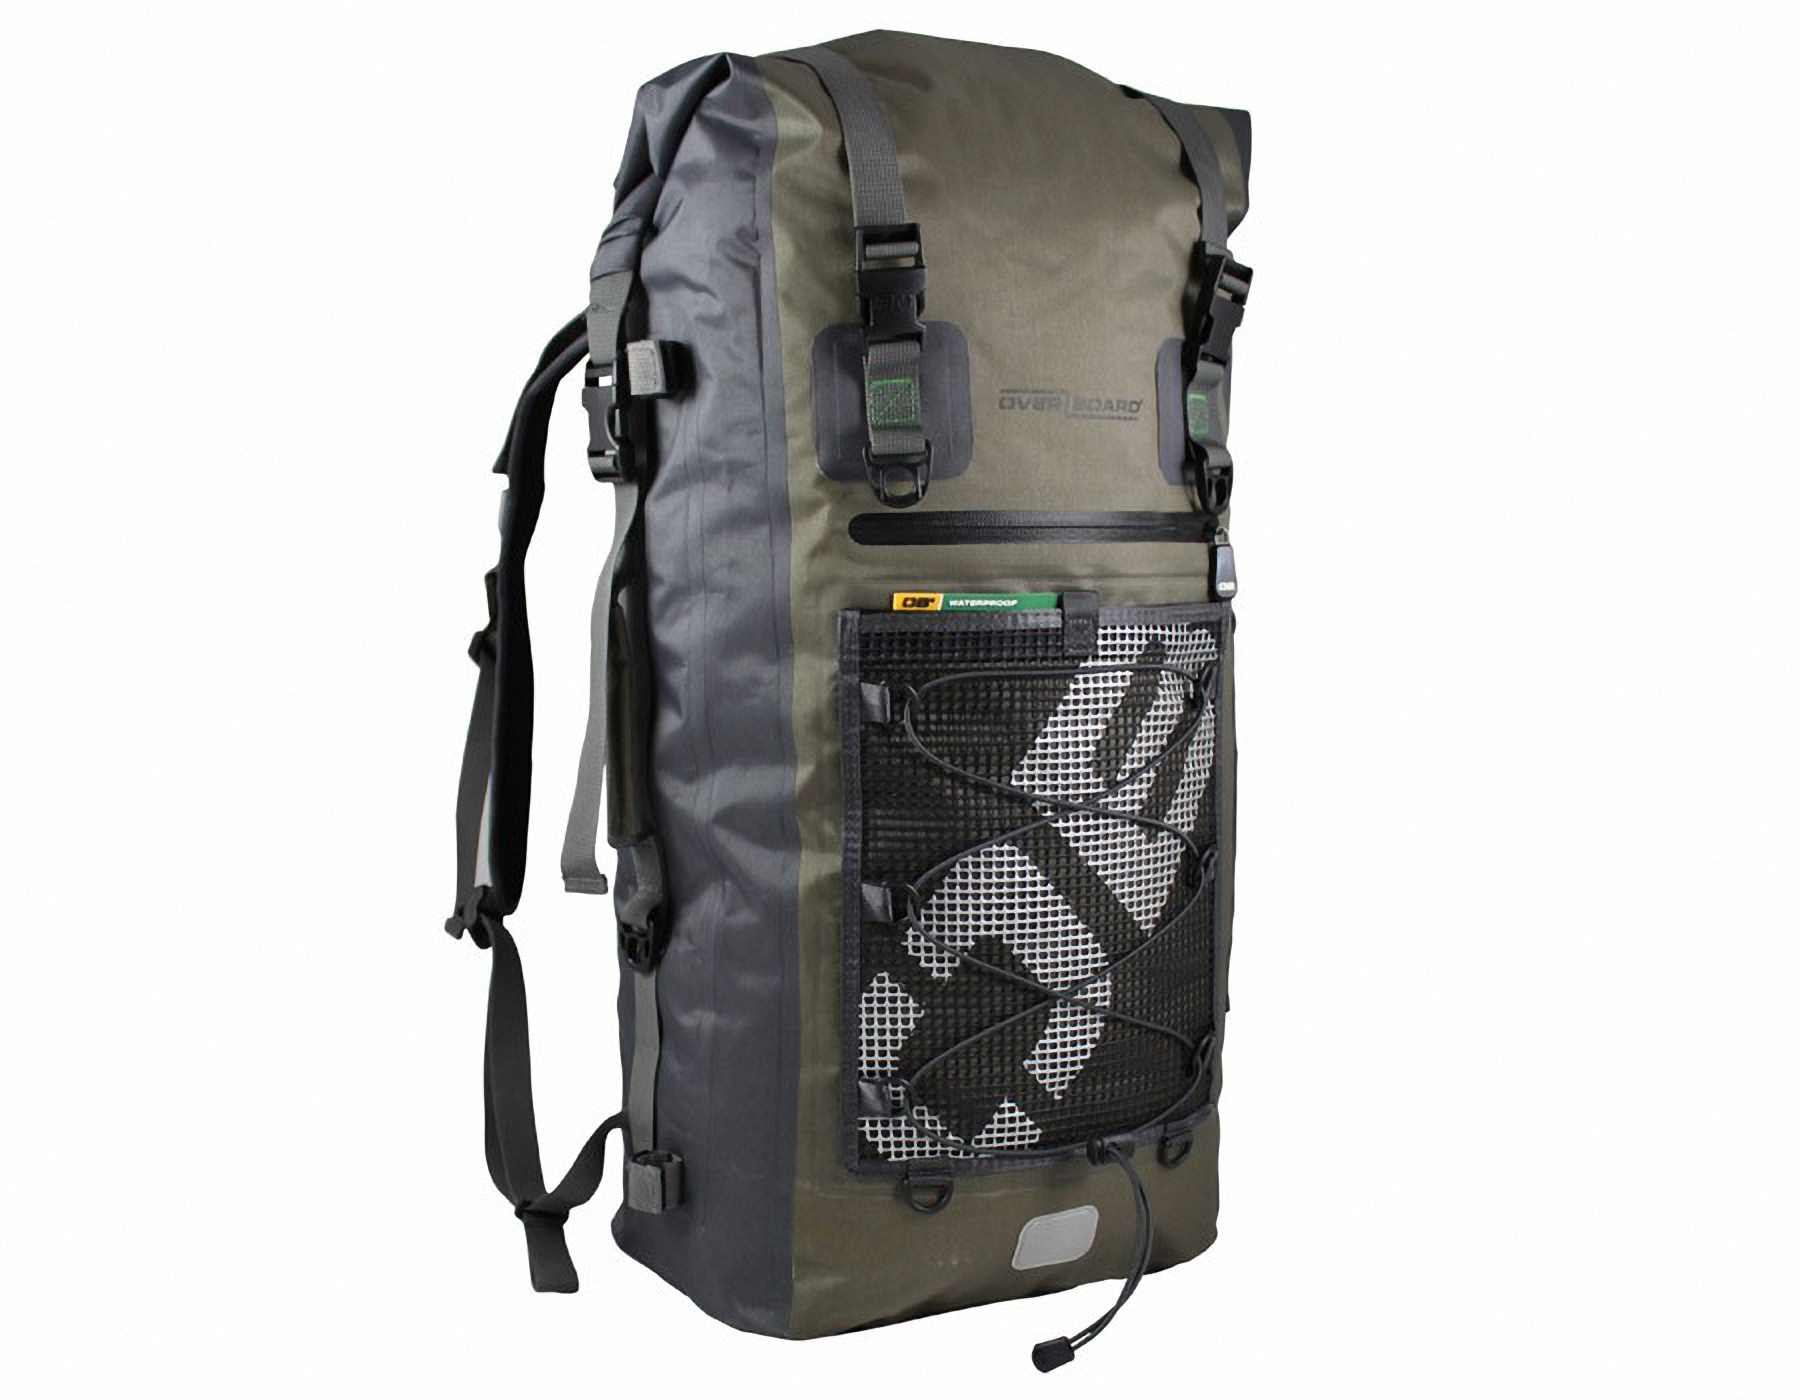 Водонепроницаемый рюкзак OverBoard OB1119G - Ultra-light Waterproof Backpack - 50L. Фото 6